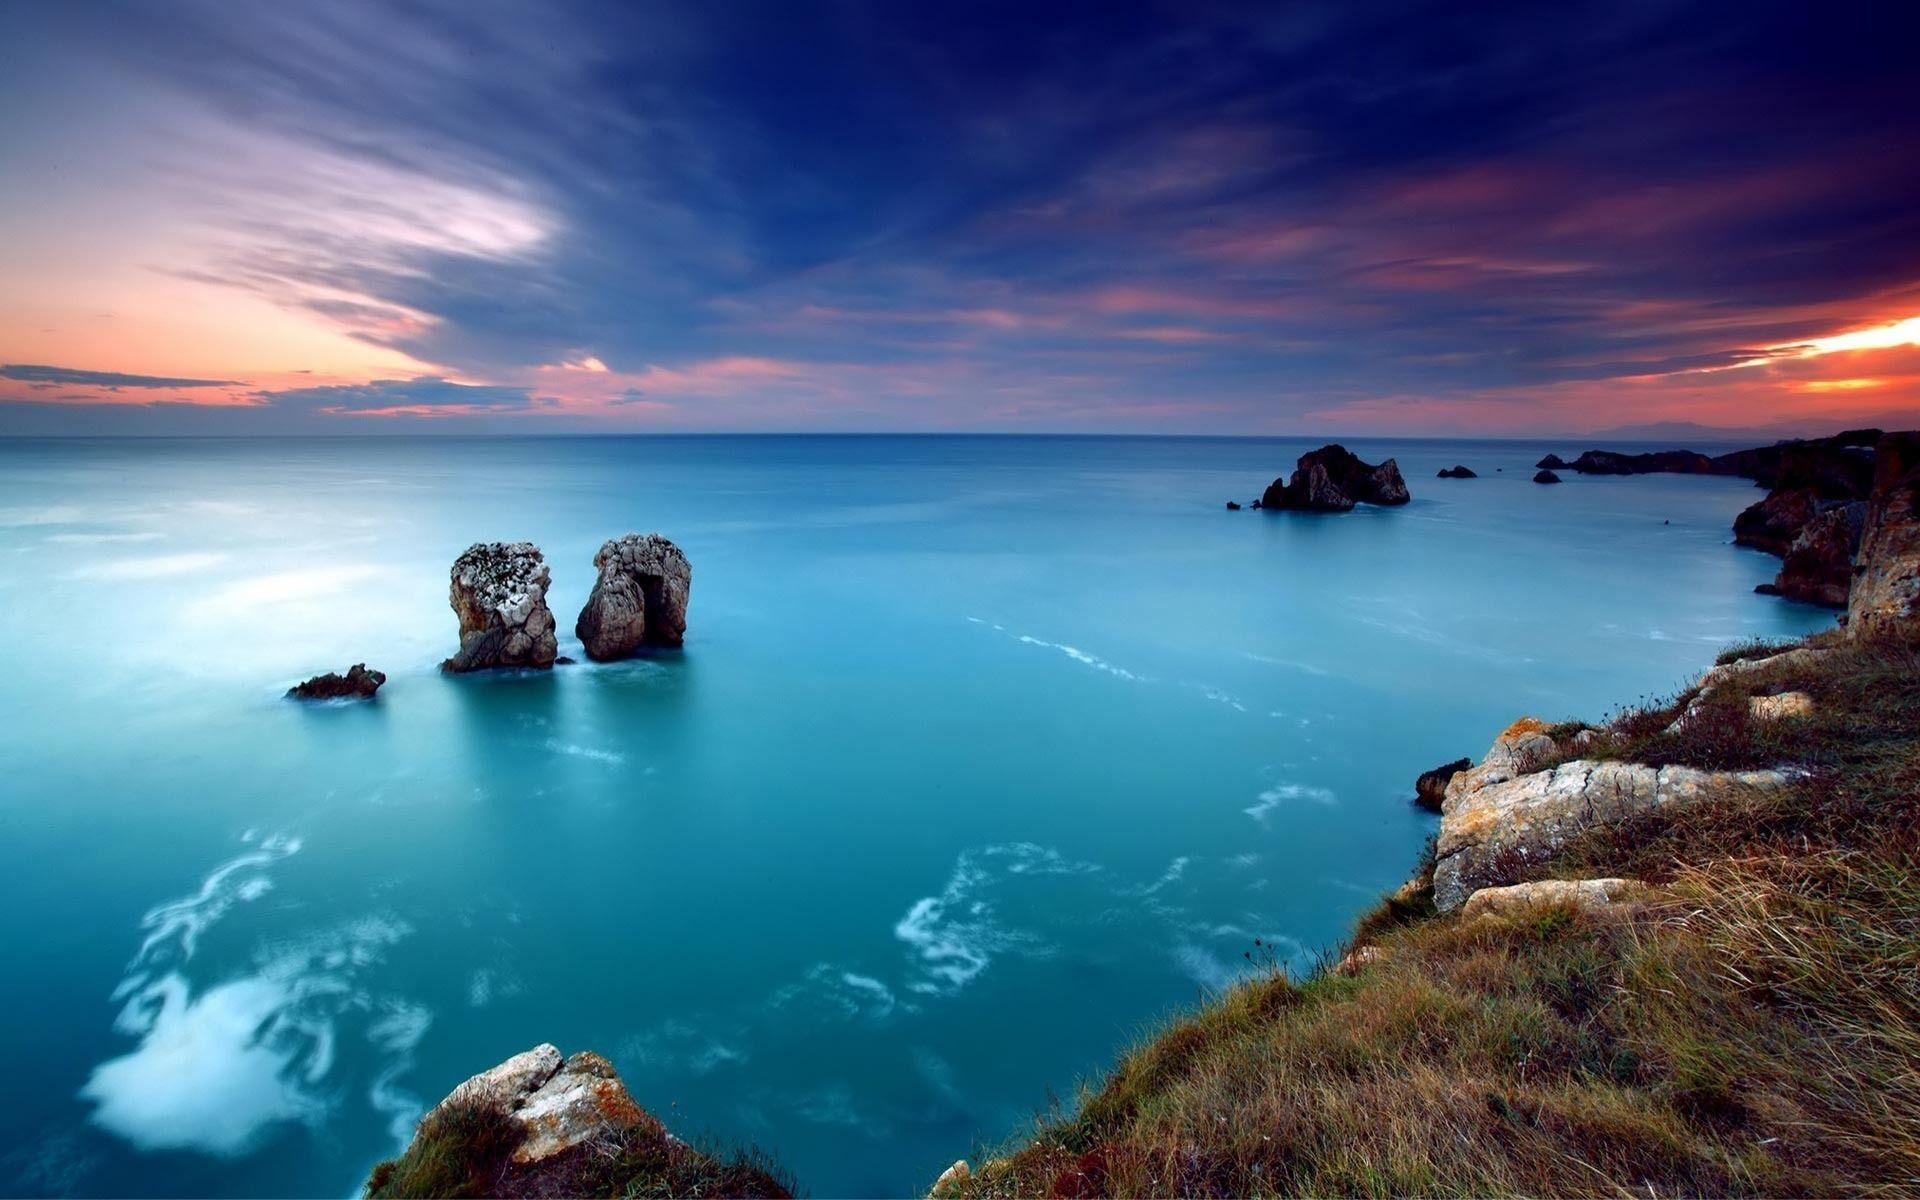 sea wallpaper - photo #12